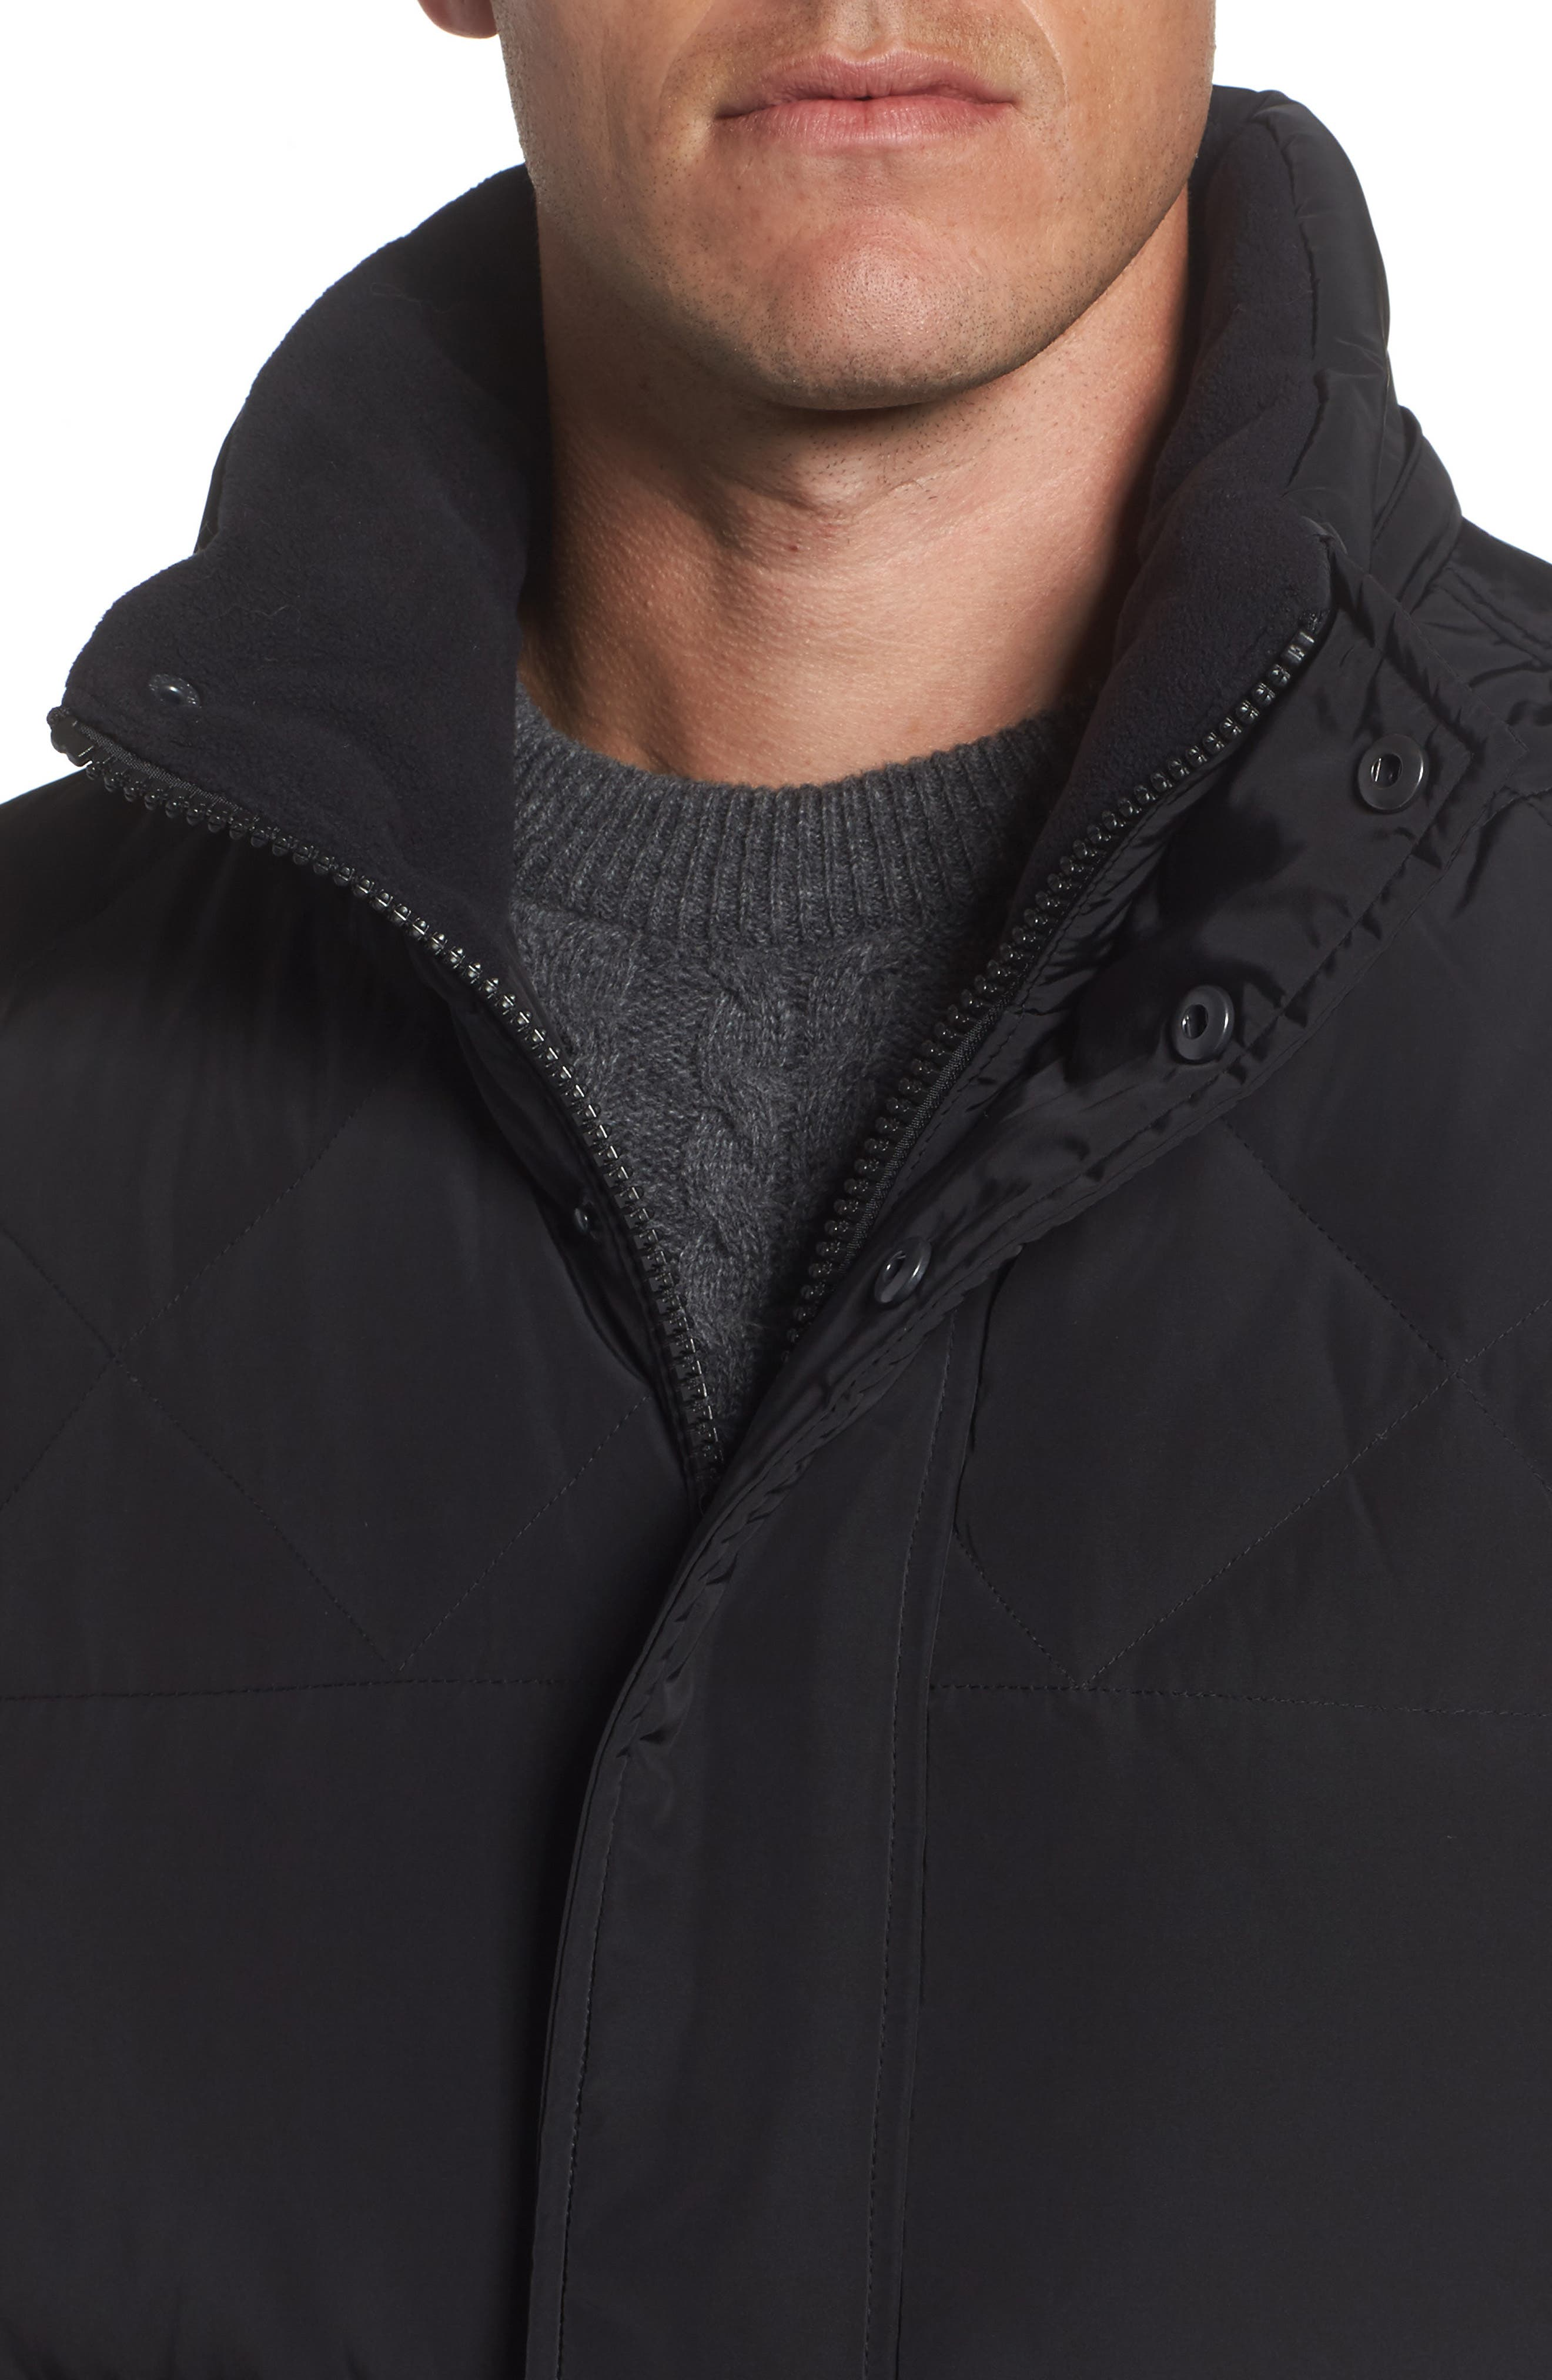 Insulated Jacket with Genuine Coyote Fur,                             Alternate thumbnail 4, color,                             Black